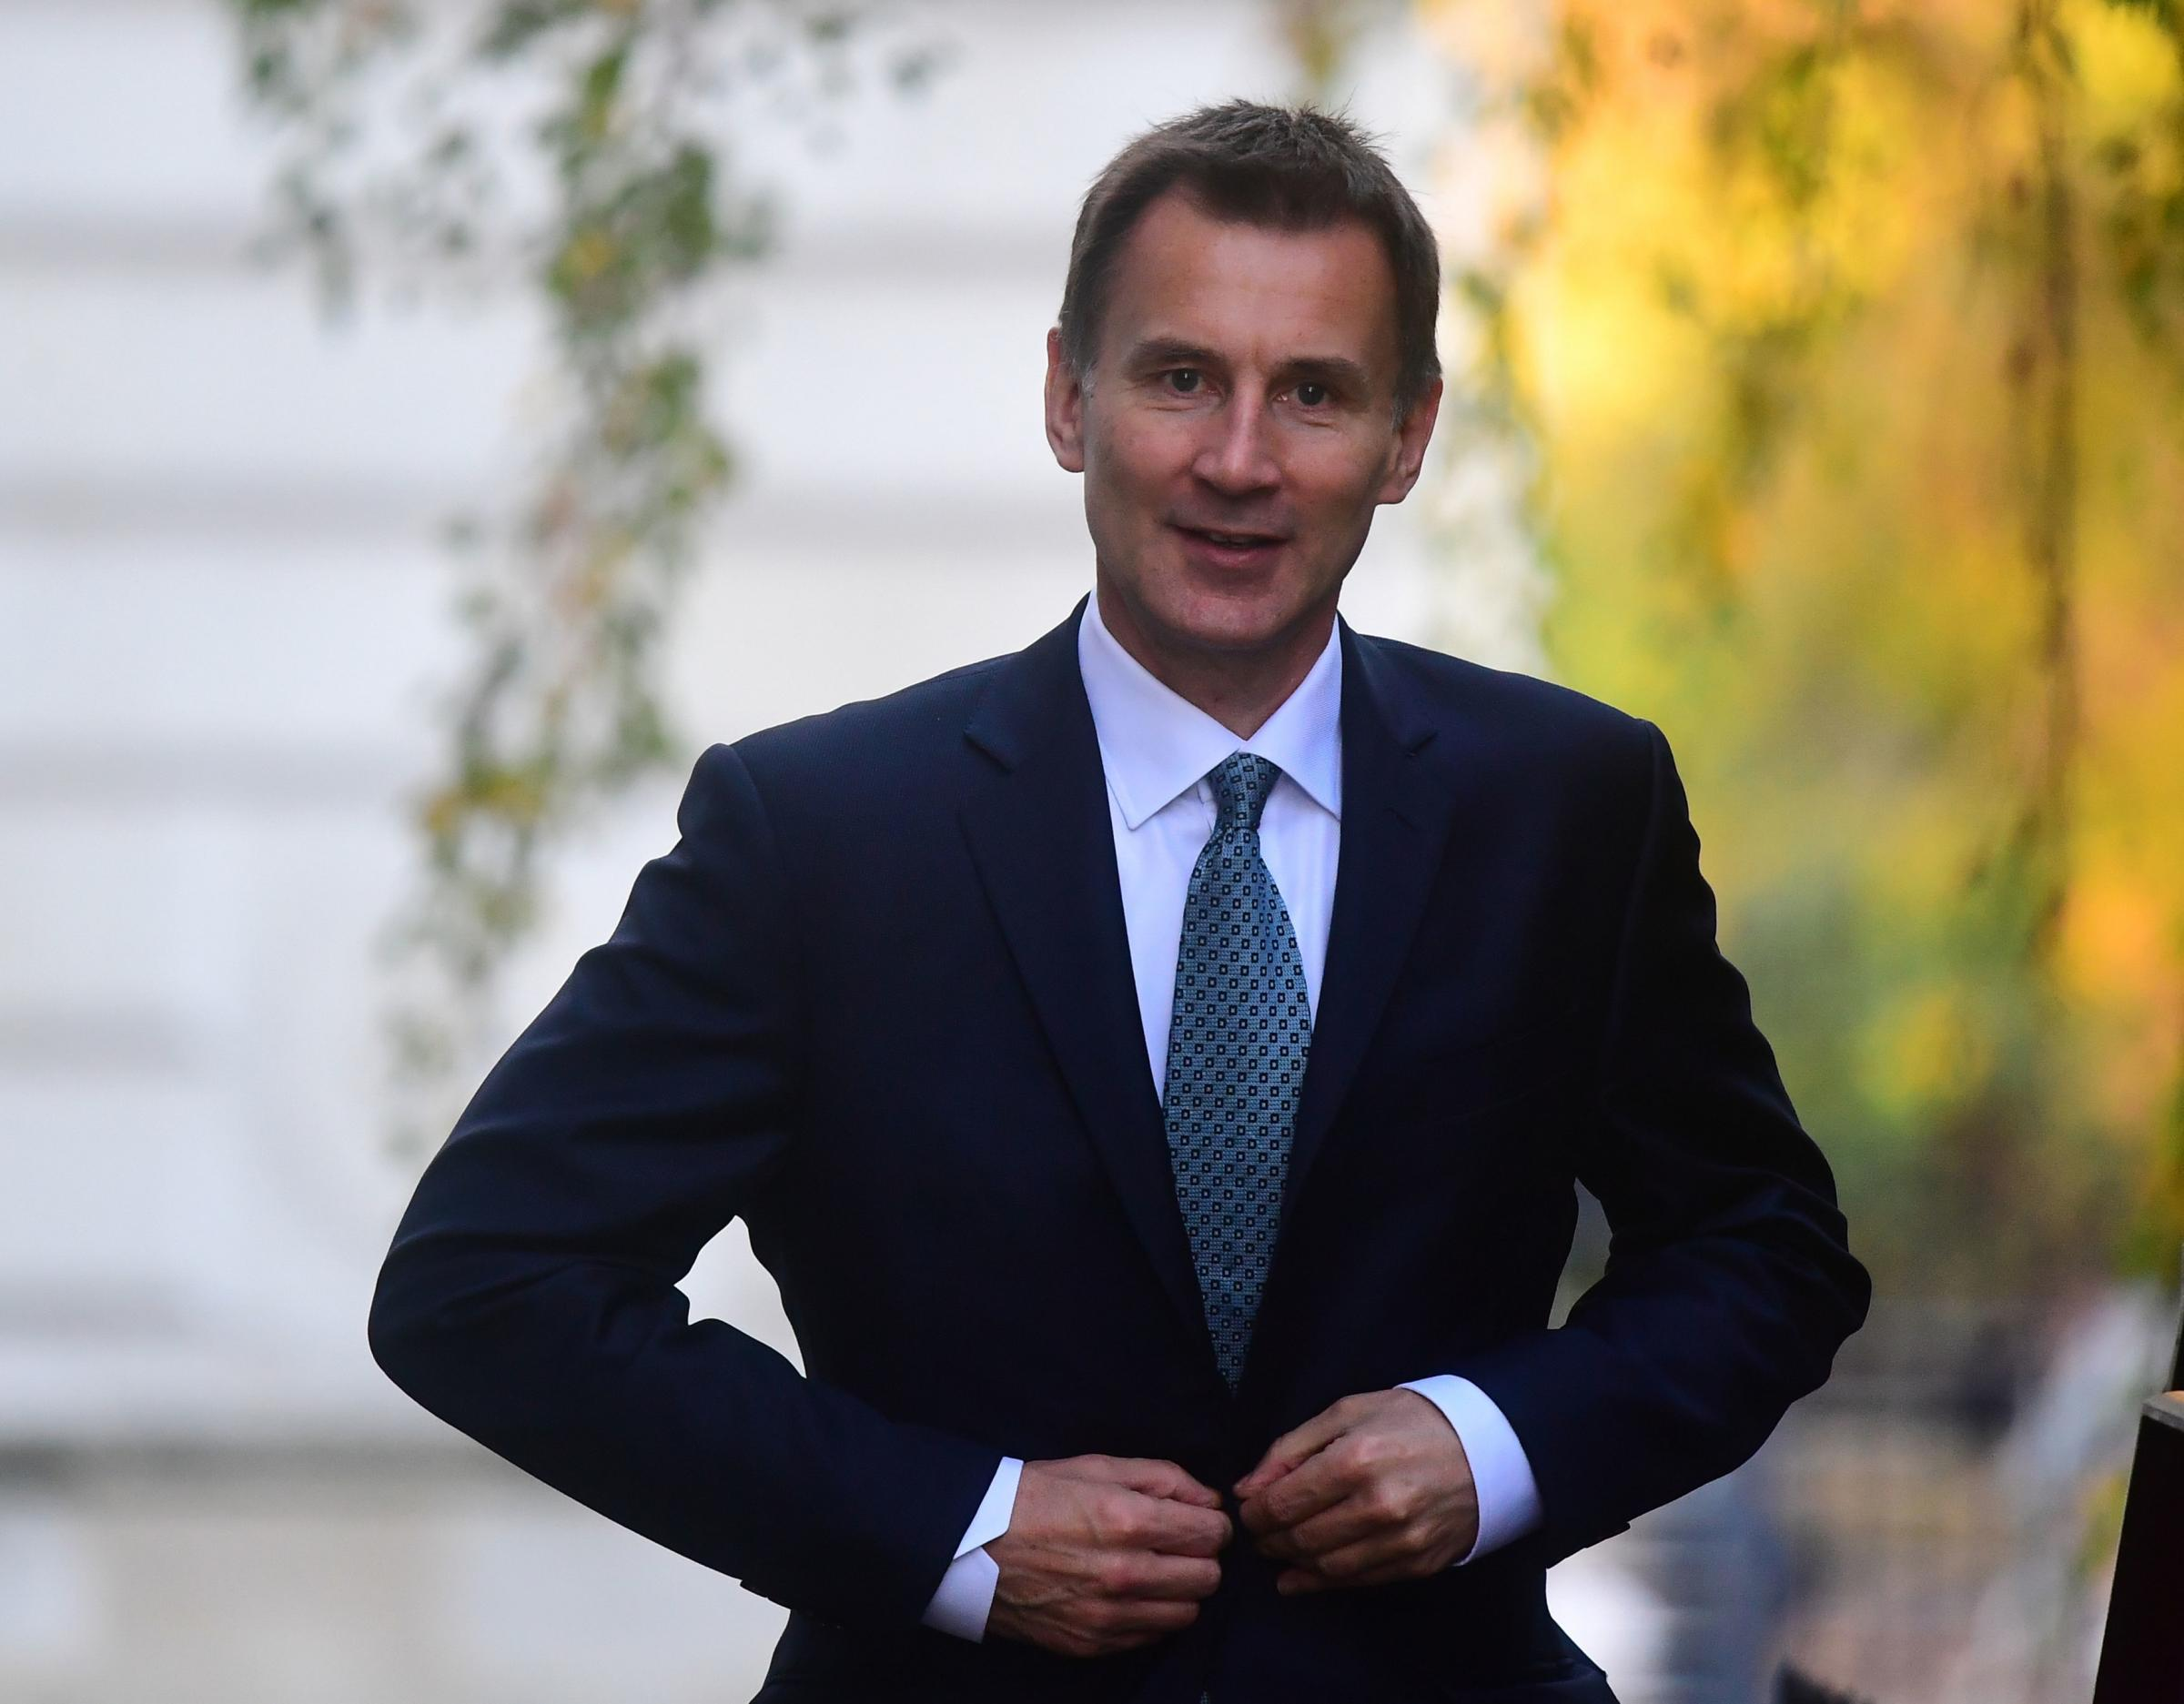 Jeremy Hunt warns Tory rebels they are risking 'most appalling chaos' in trying to topple Theresa May